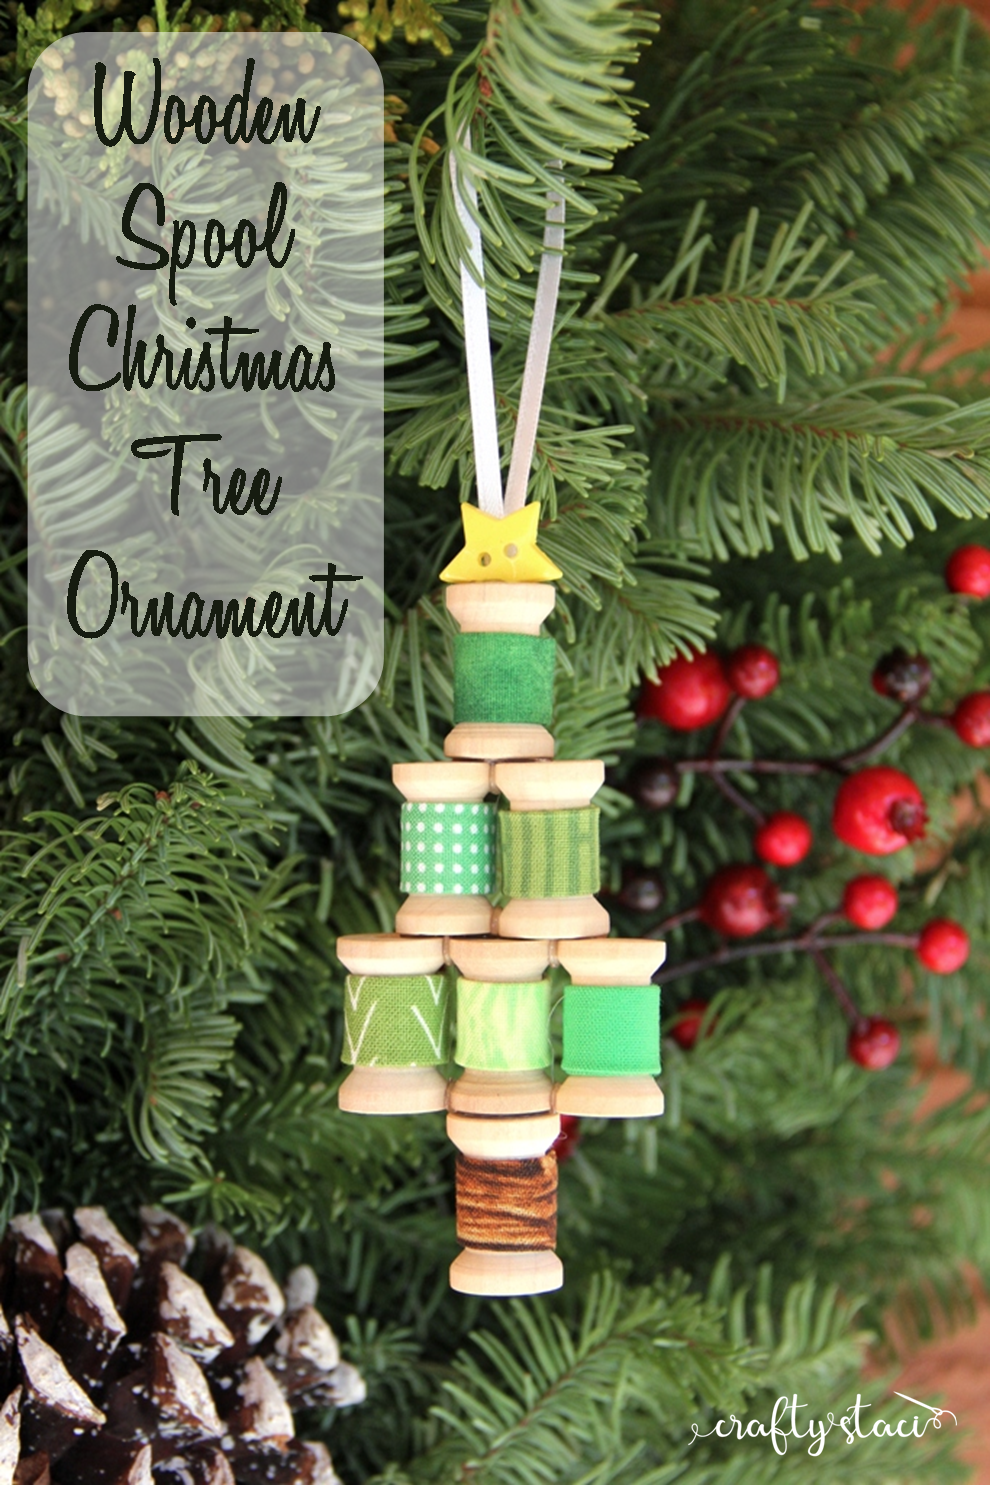 Wooden Spool Christmas Tree Ornament from Crafty Staci